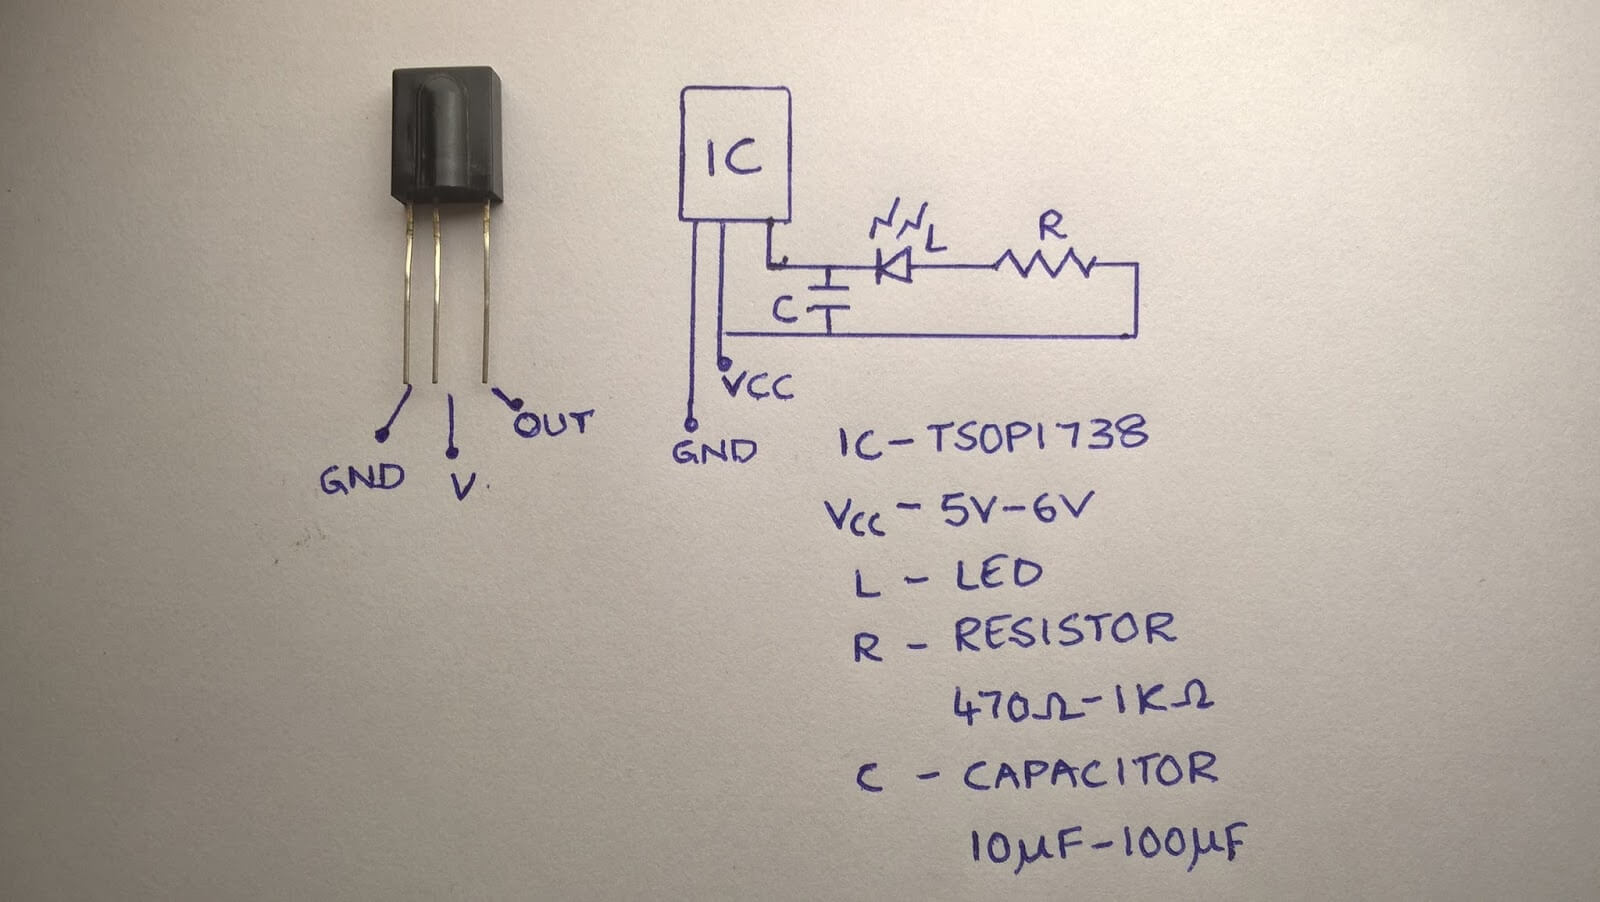 Pleasant Infrared Ir Remote Tester Ir Receiver Circuit Using Tsop1738 Wiring 101 Vieworaxxcnl